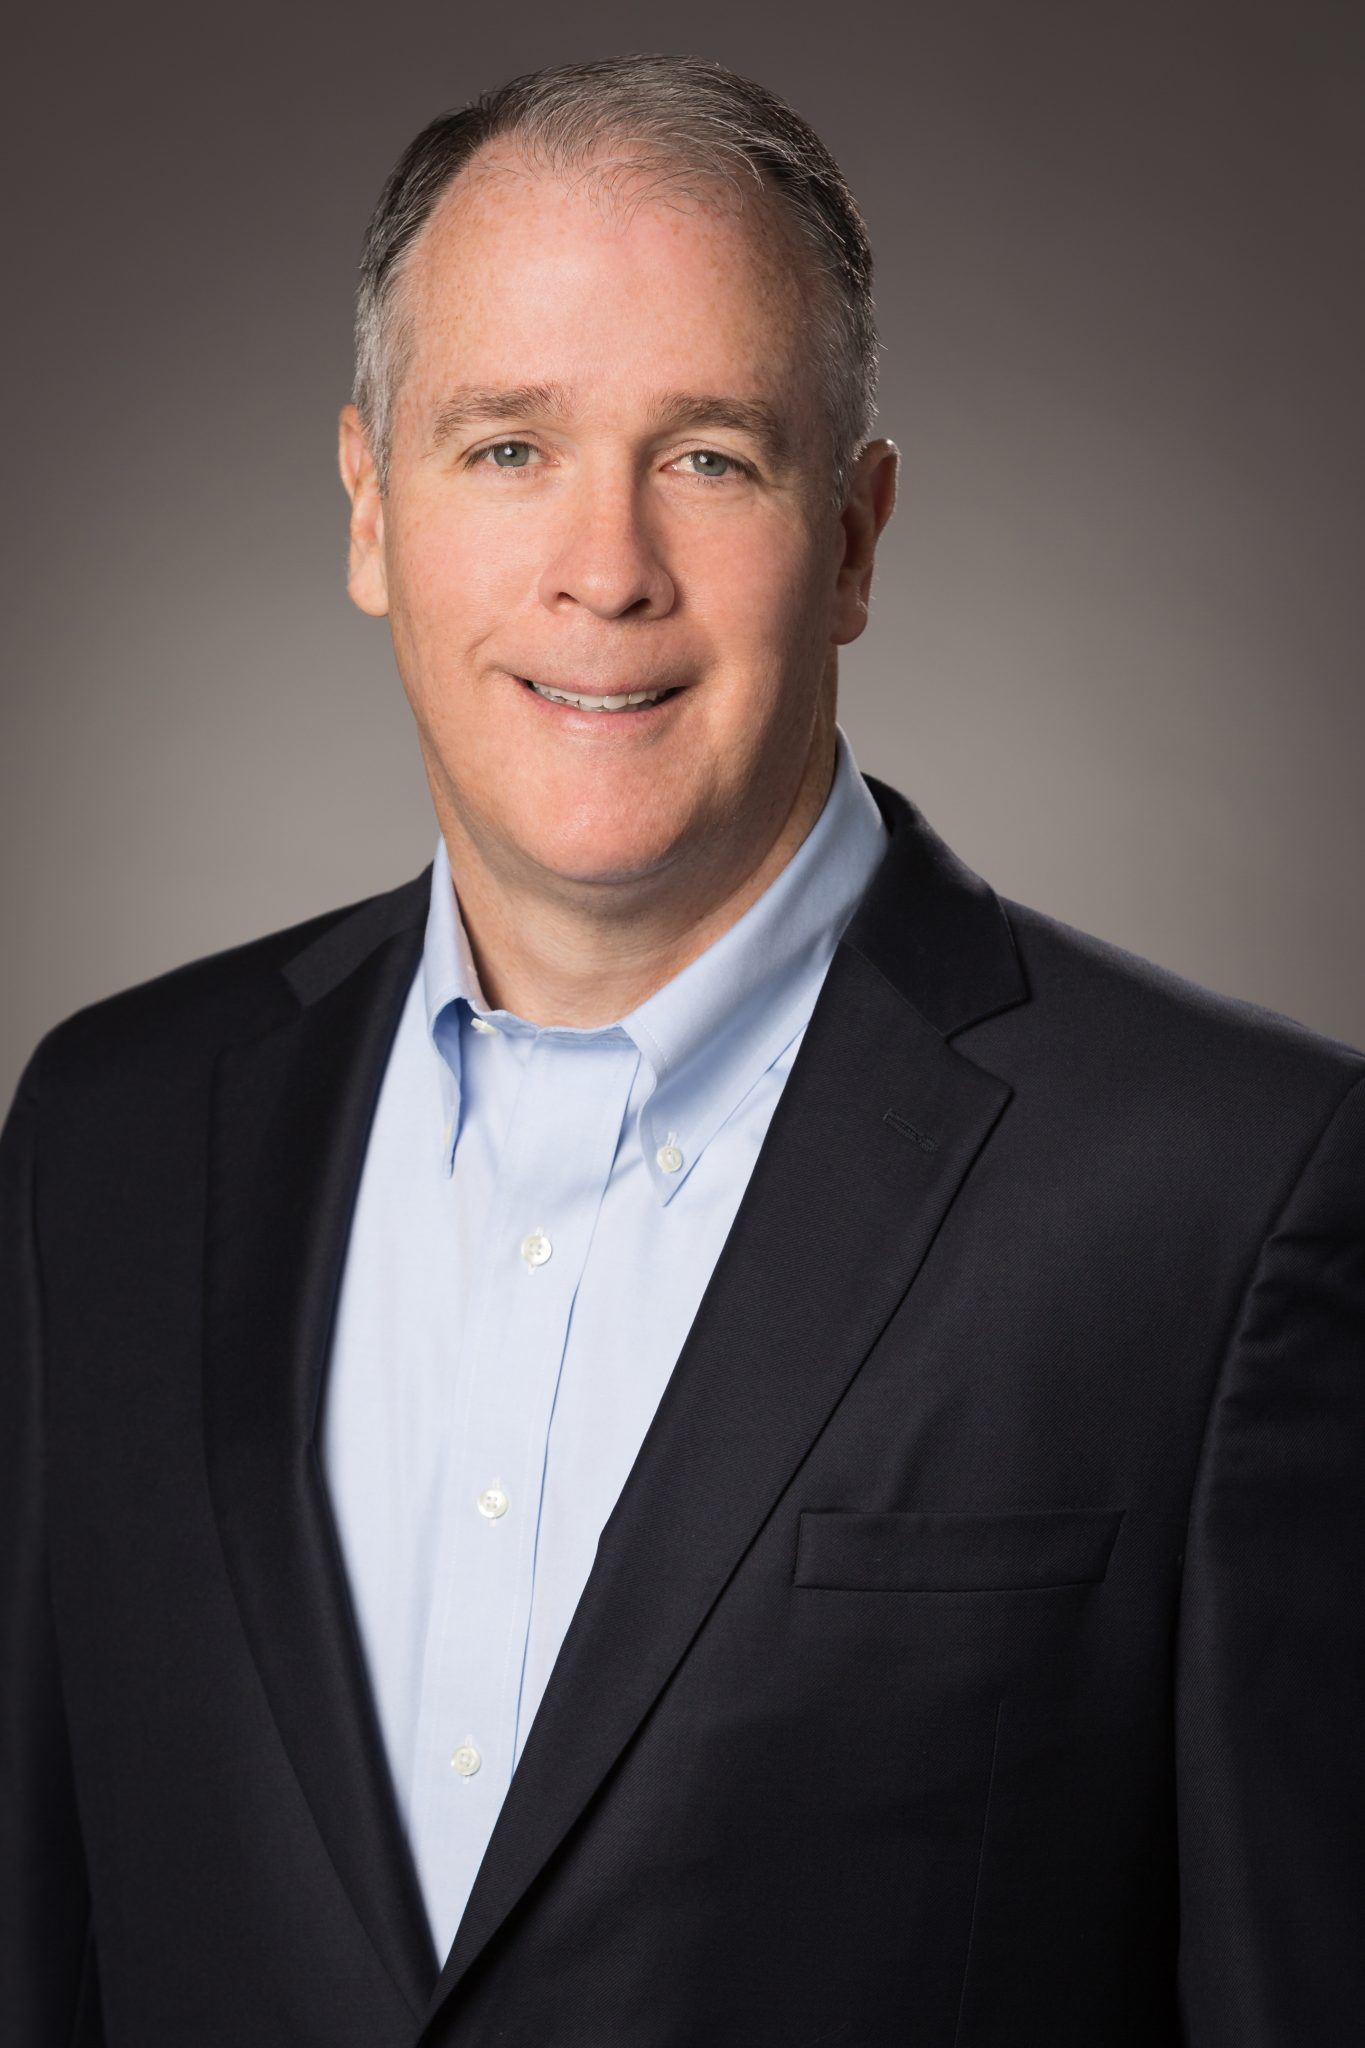 Chairman, President & CEO at BJ's Wholesale Club, Inc.